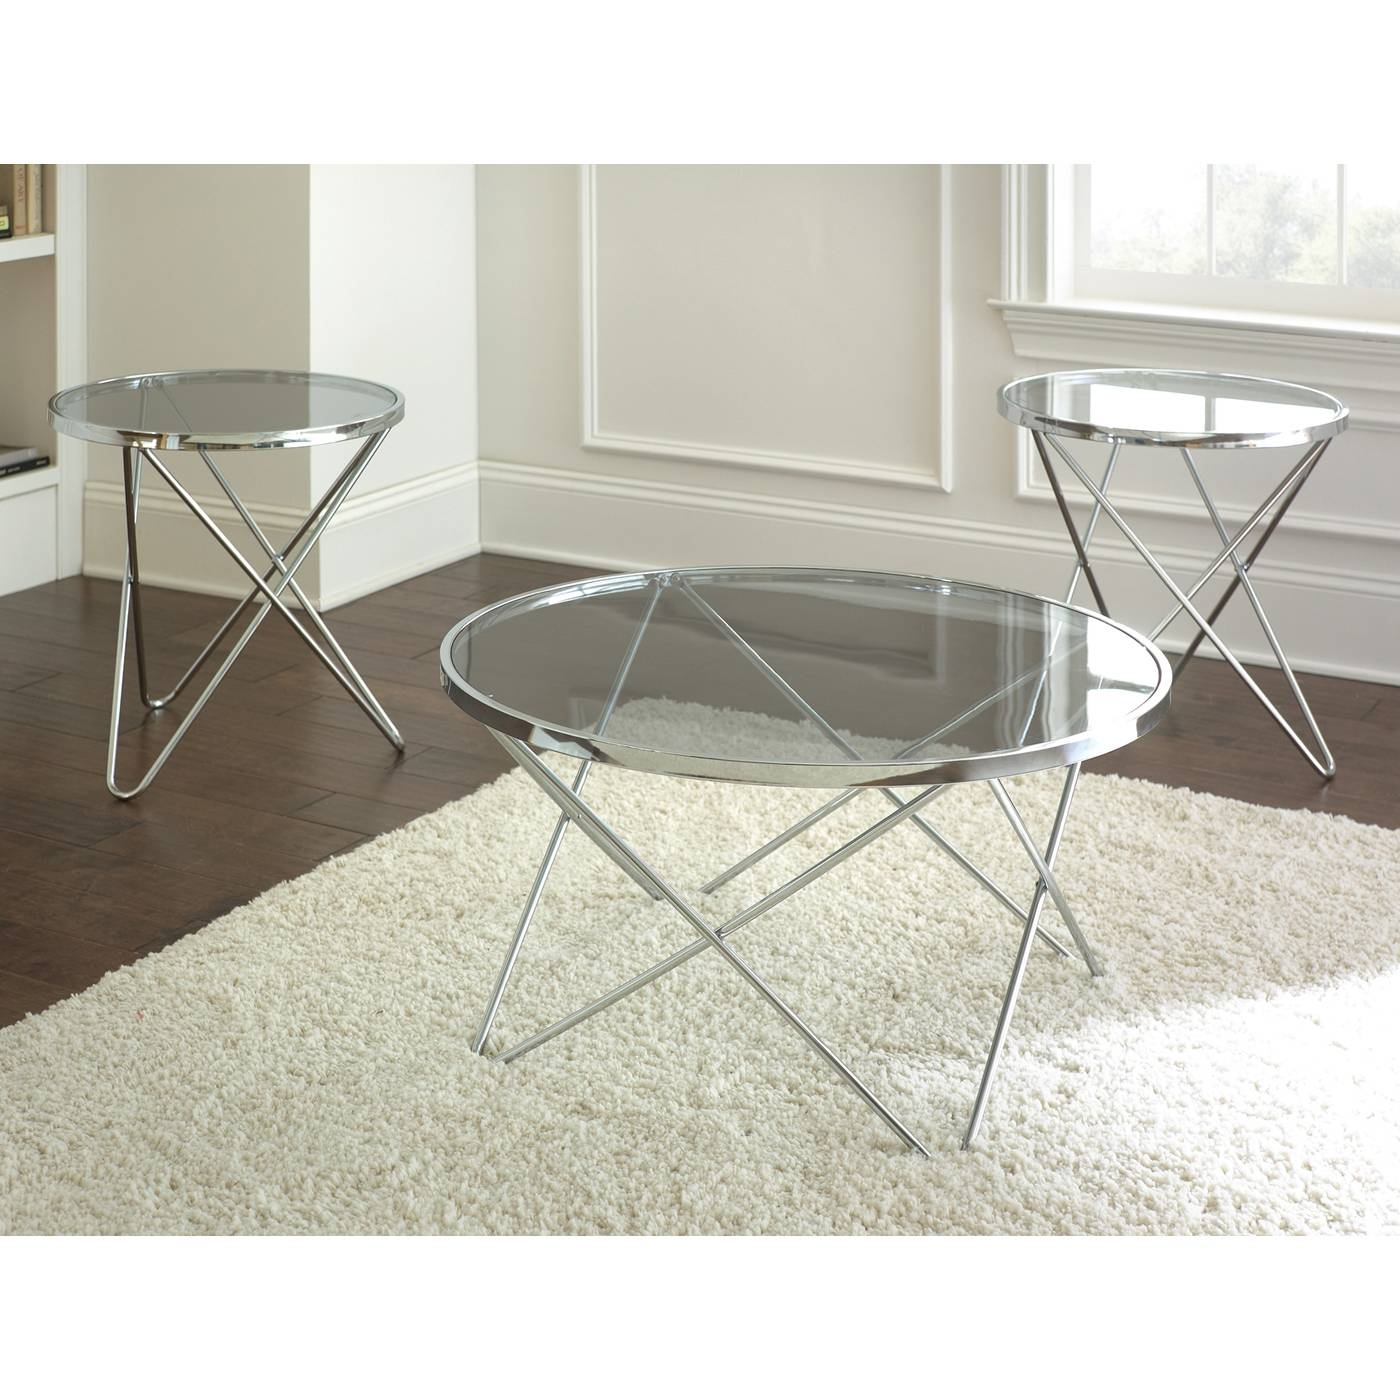 2017 Popular Hammered Silver Coffee Tables